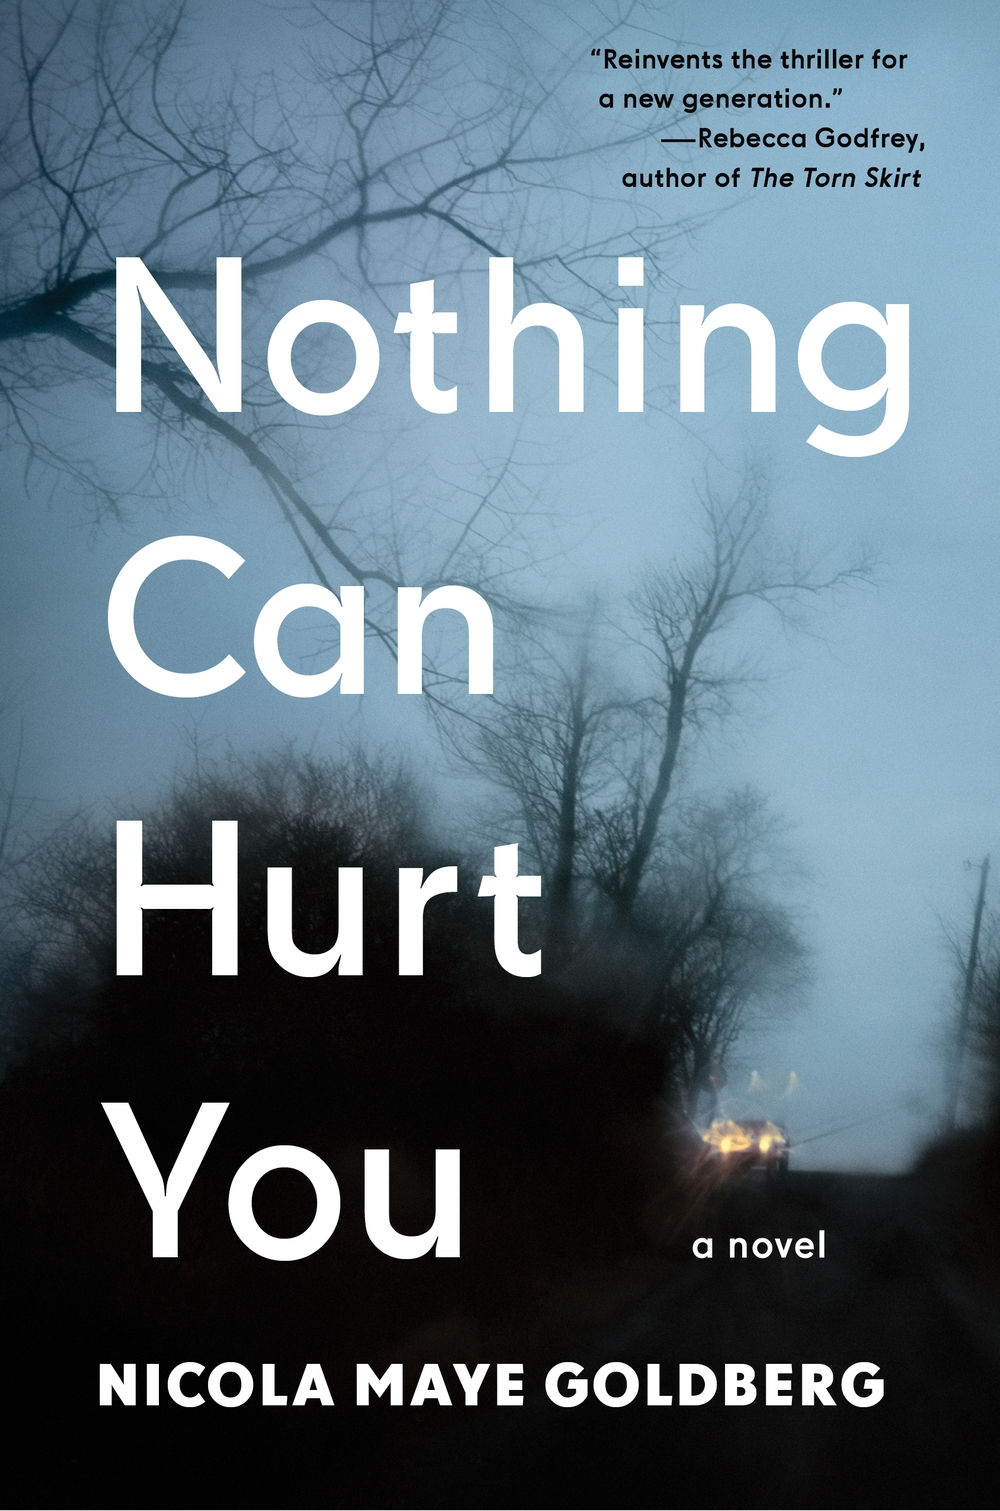 Virtual Book Launch: Nothing Can Hurt You by Nicola Maye Goldberg in conversation with Rebecca Godfrey